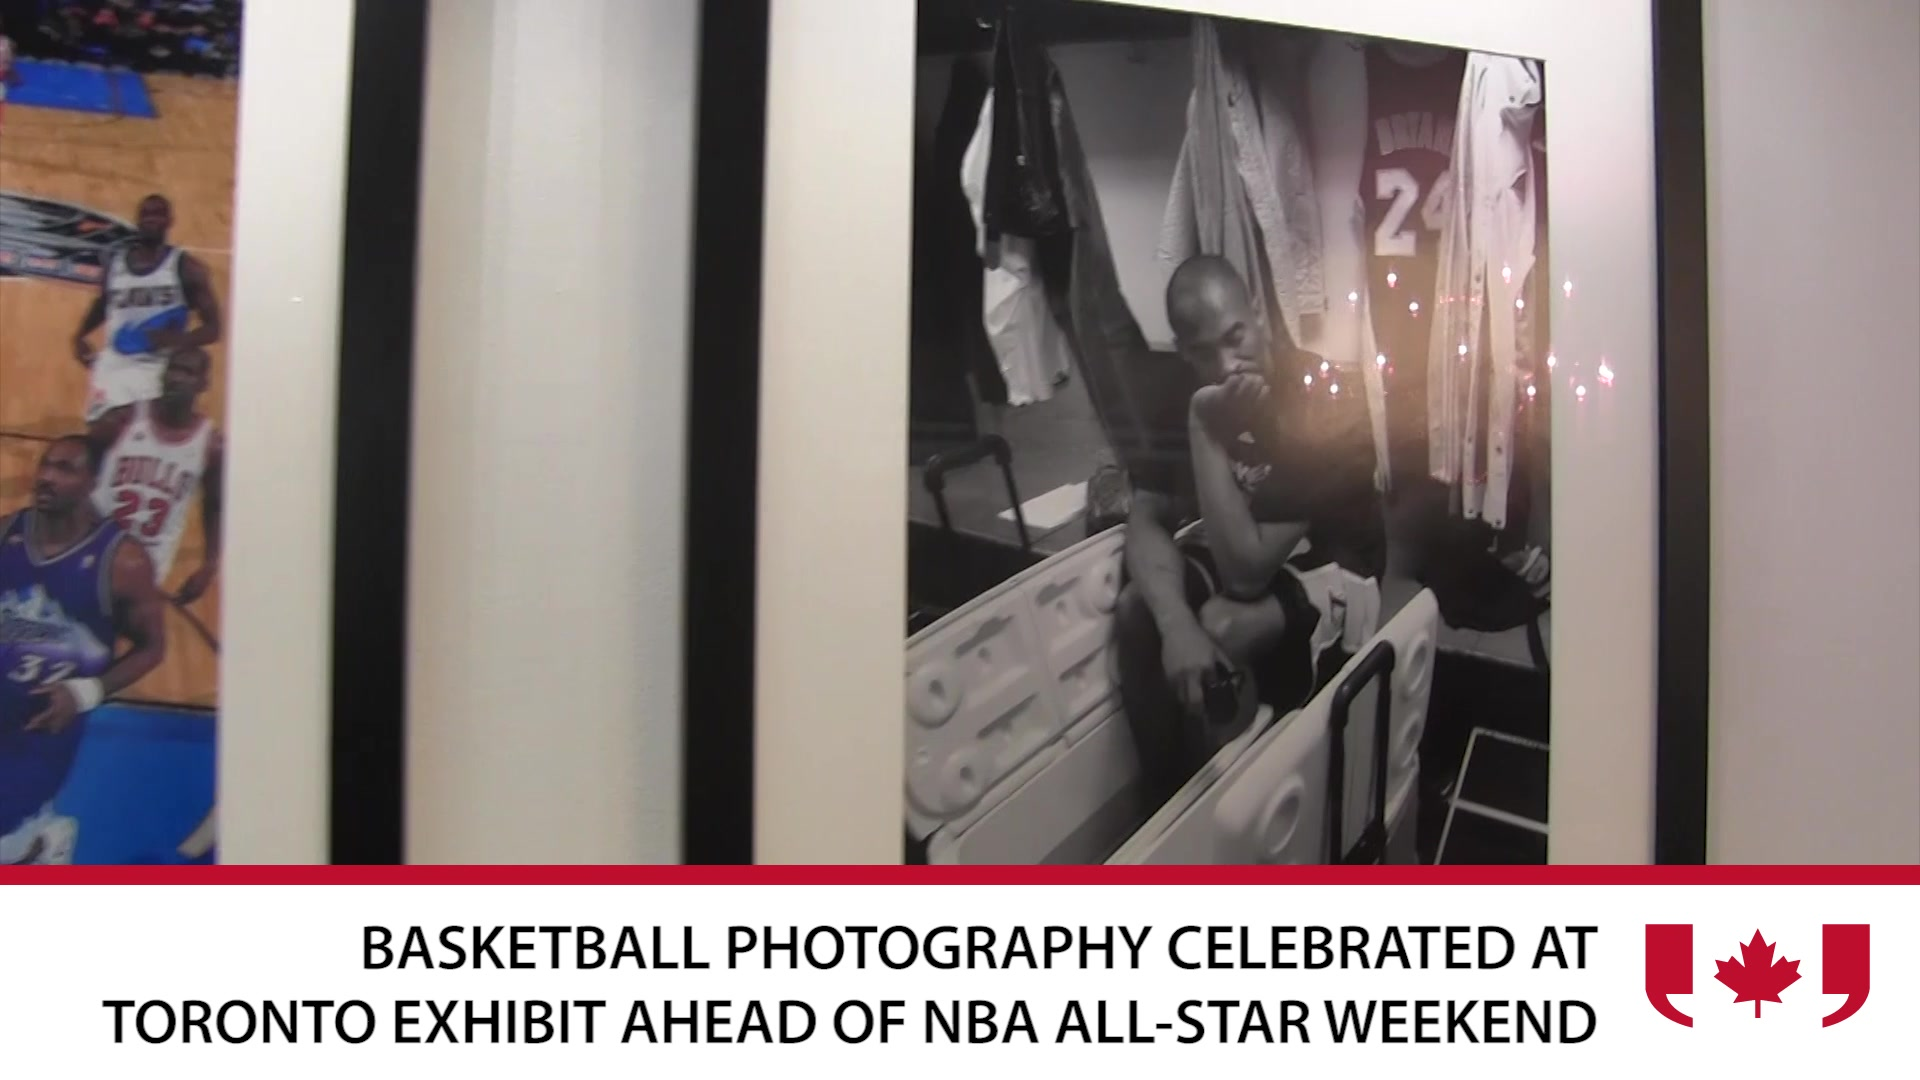 Basketball Photography on Display Ahead of NBA All-Star Game